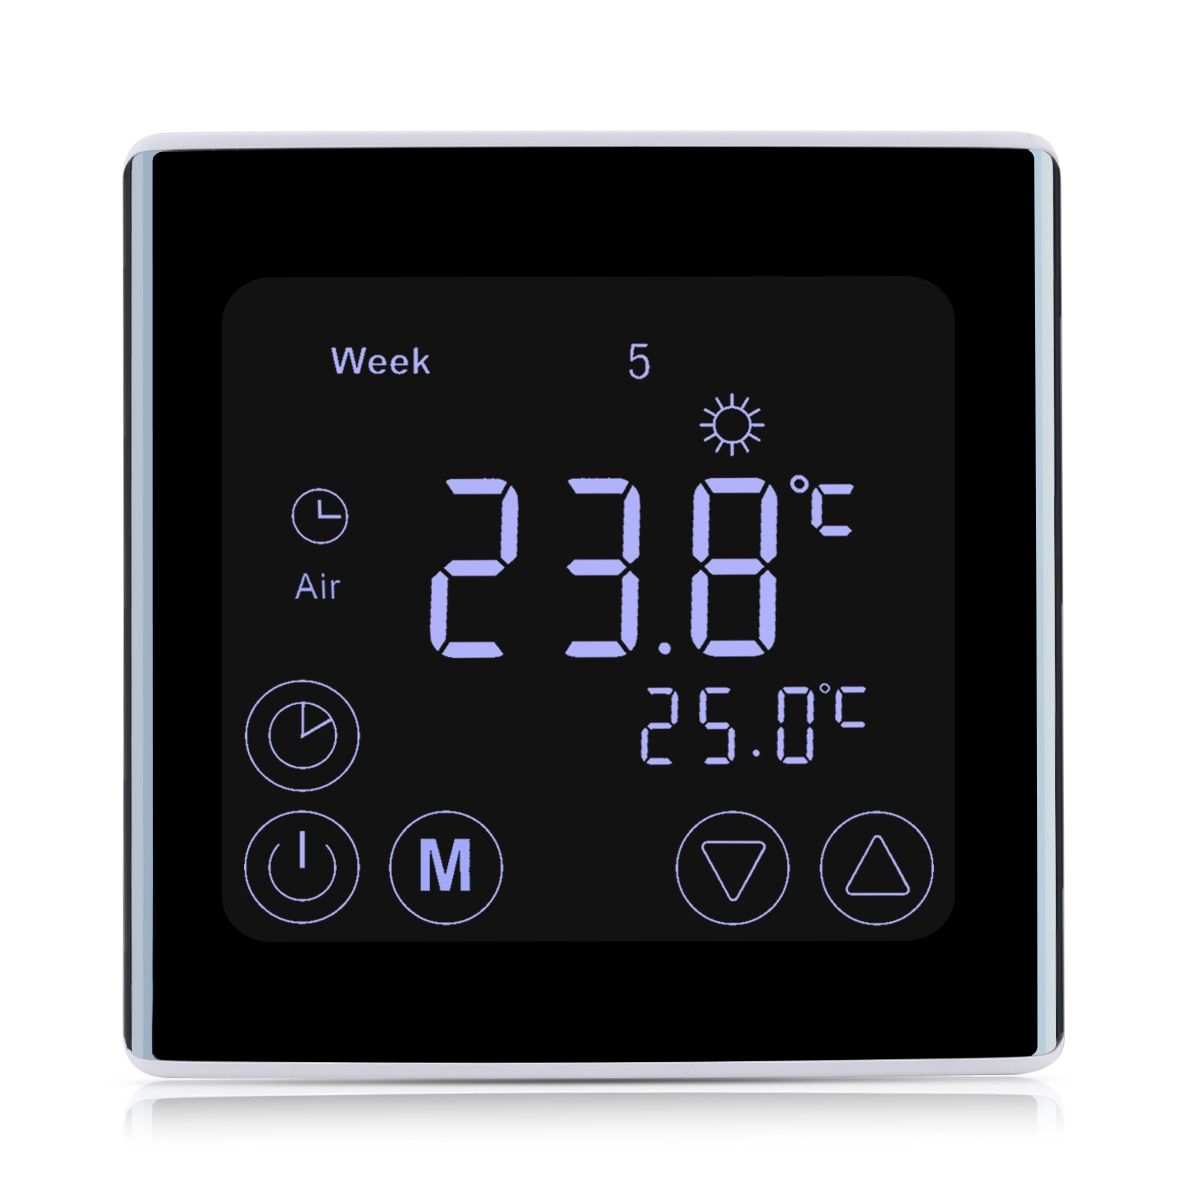 New Weekly Underfloor Heating Thermostat Home Smart LCD Touch Screen Room Temperature Controller LED Thermostat White Backlight